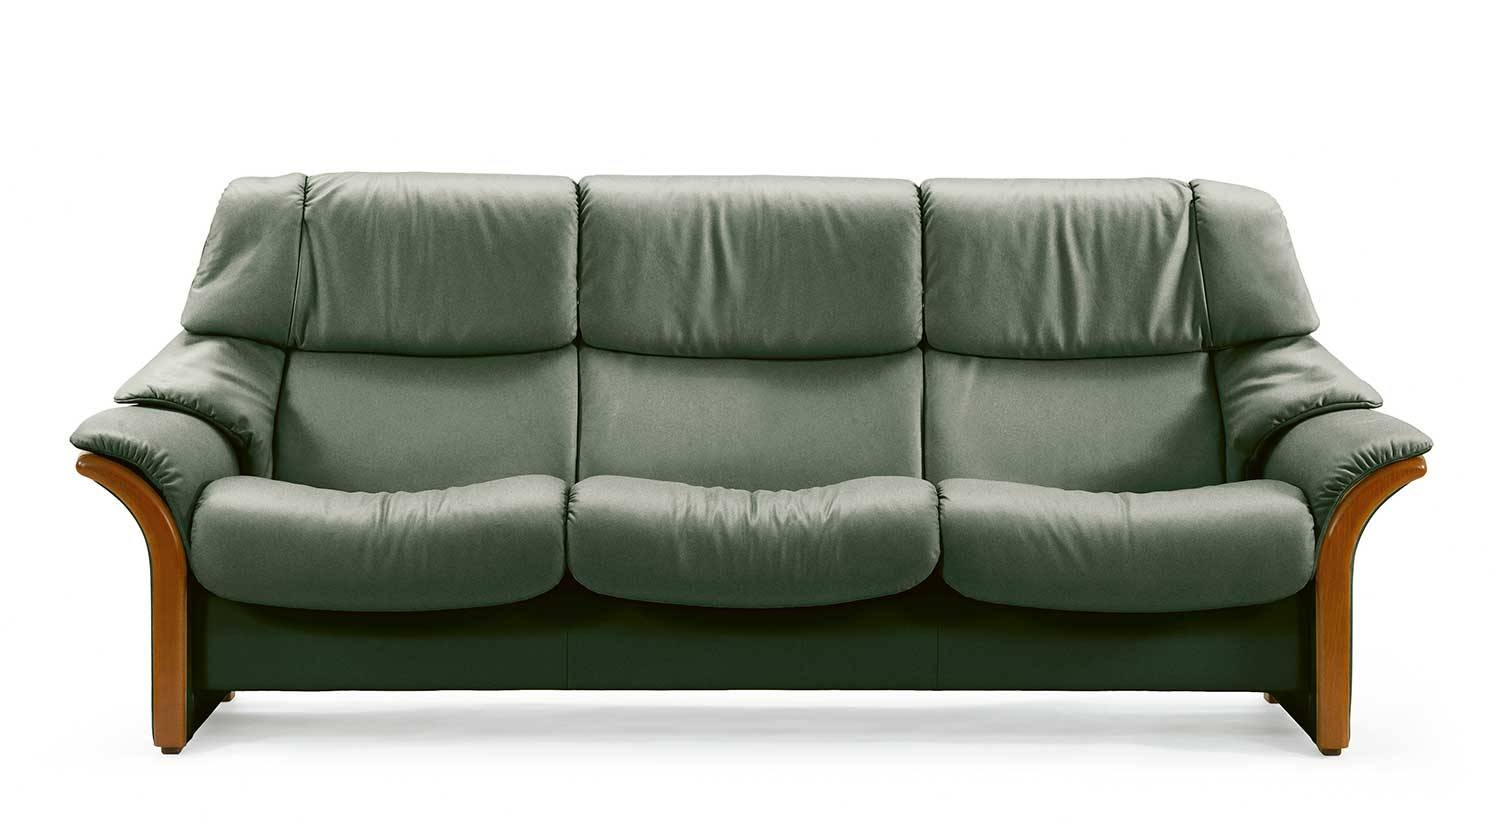 Circle Furniture - Eldorado Stressless Highback Sofa | Ekornes regarding Ekornes Sectional Sofa (Image 7 of 30)